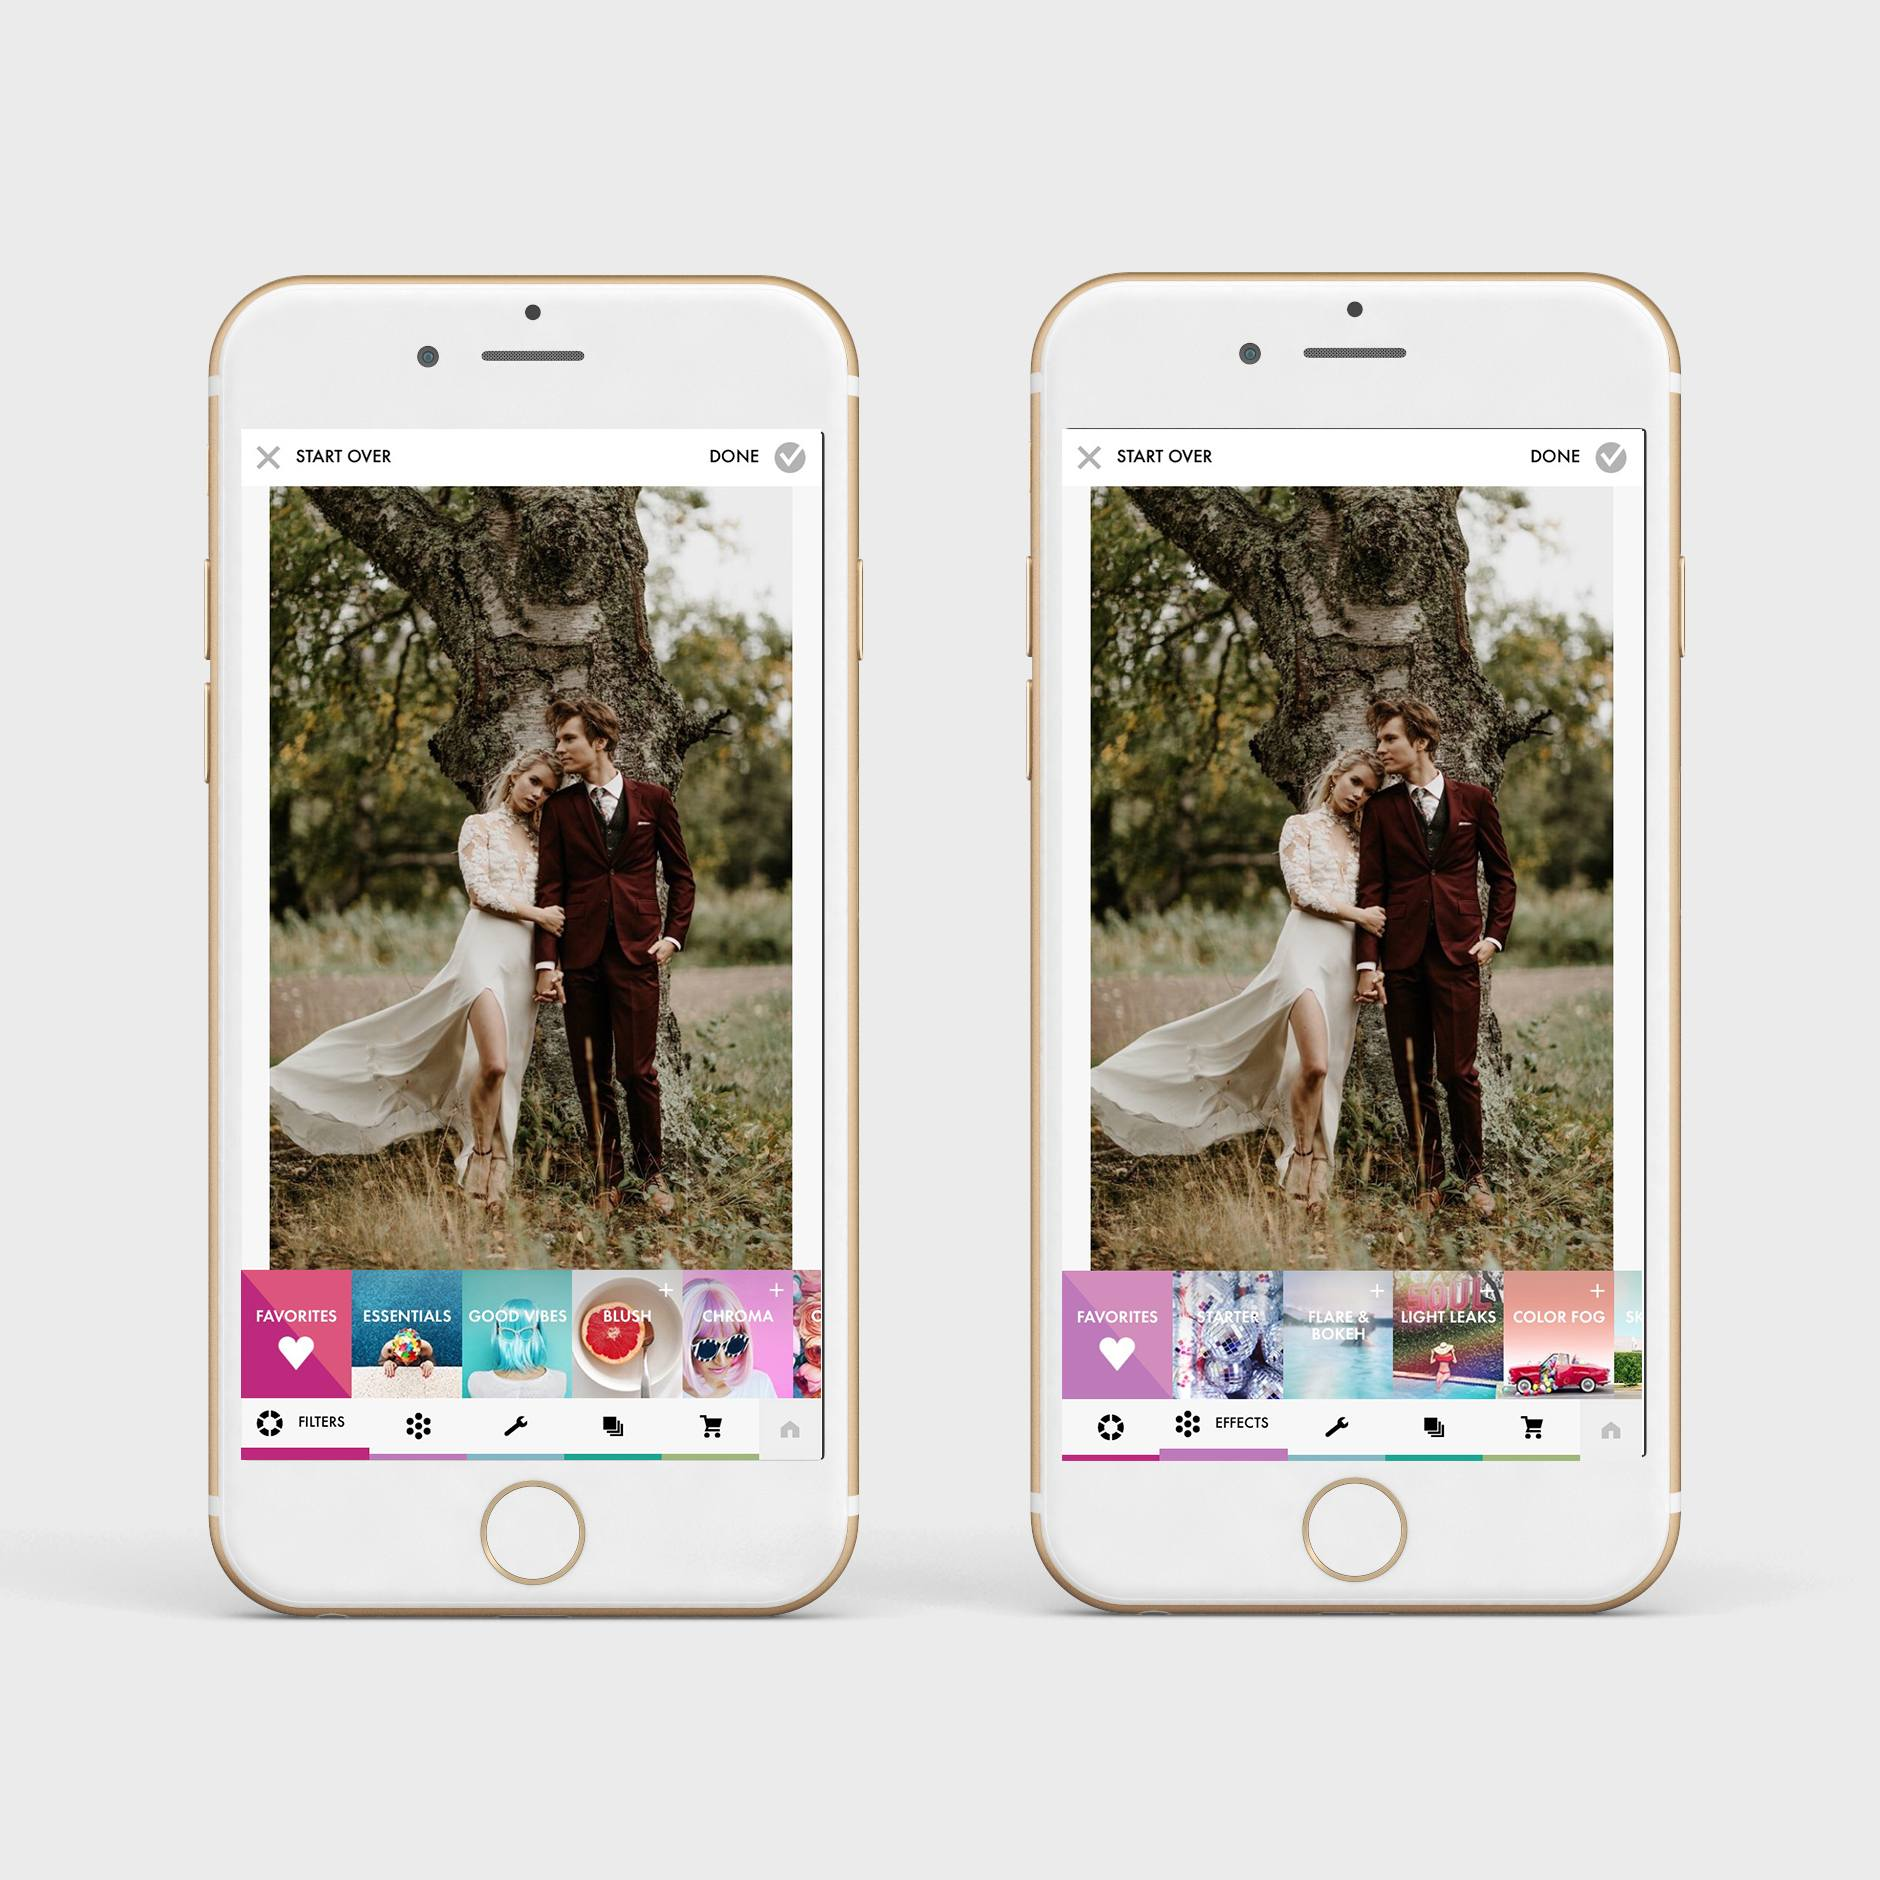 18 Apps to Add Wow Factor to Your Instagram Stories | Photobug Community